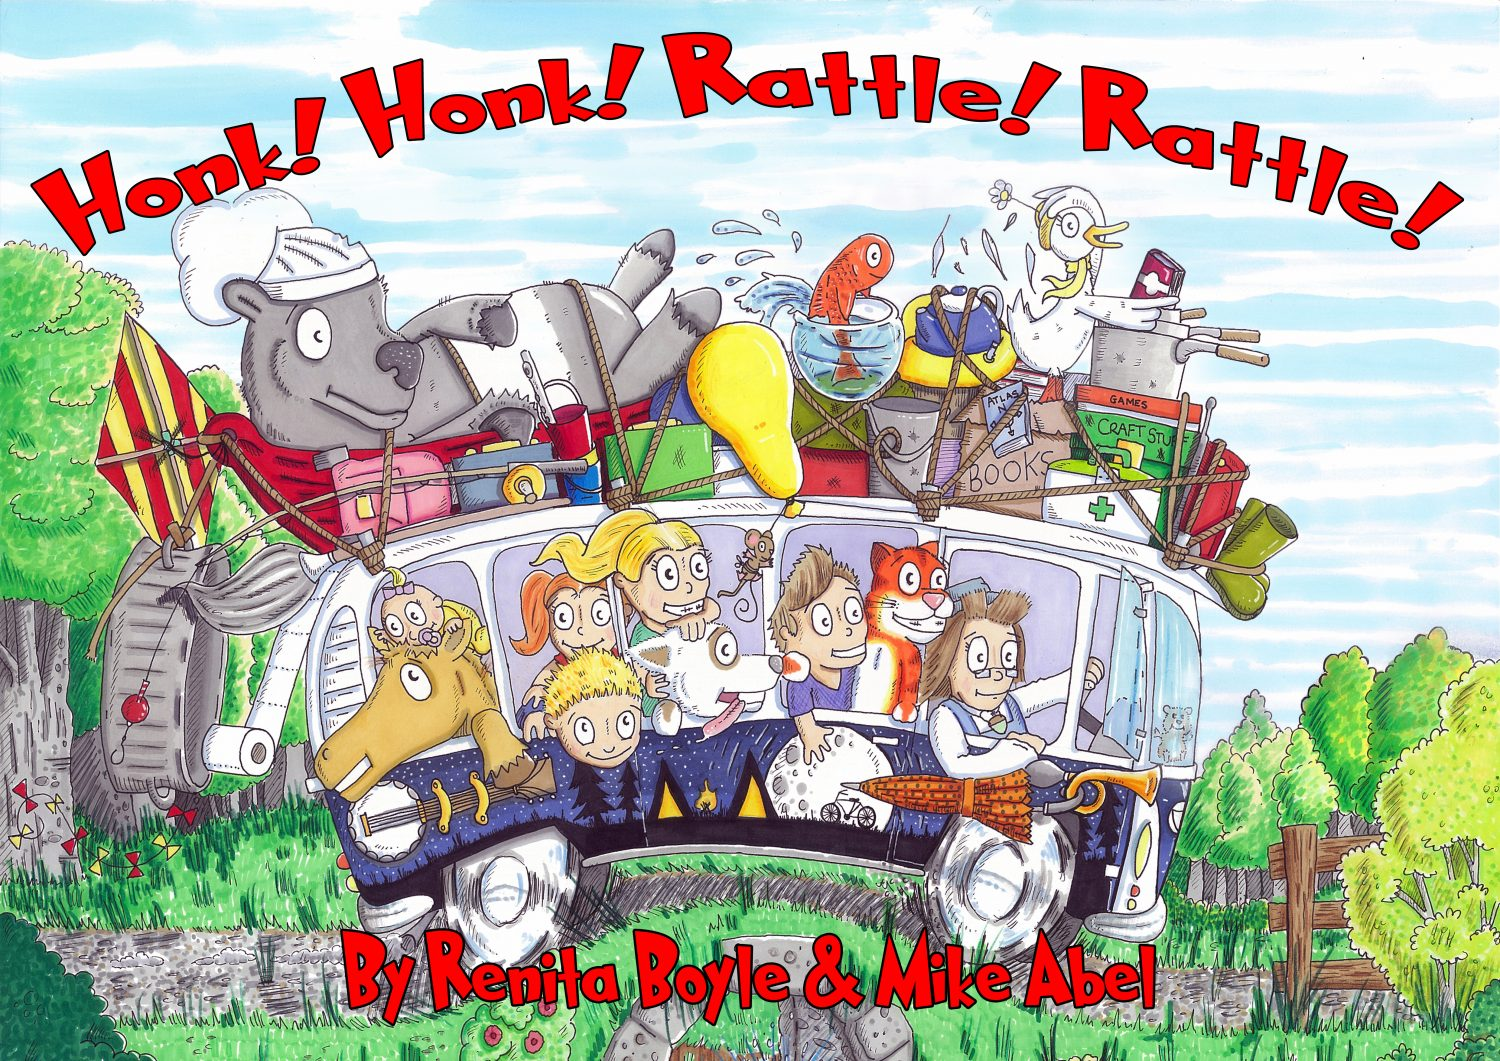 Honk! Honk! Rattle! Rattle! by Renita Boyle and Mike Able